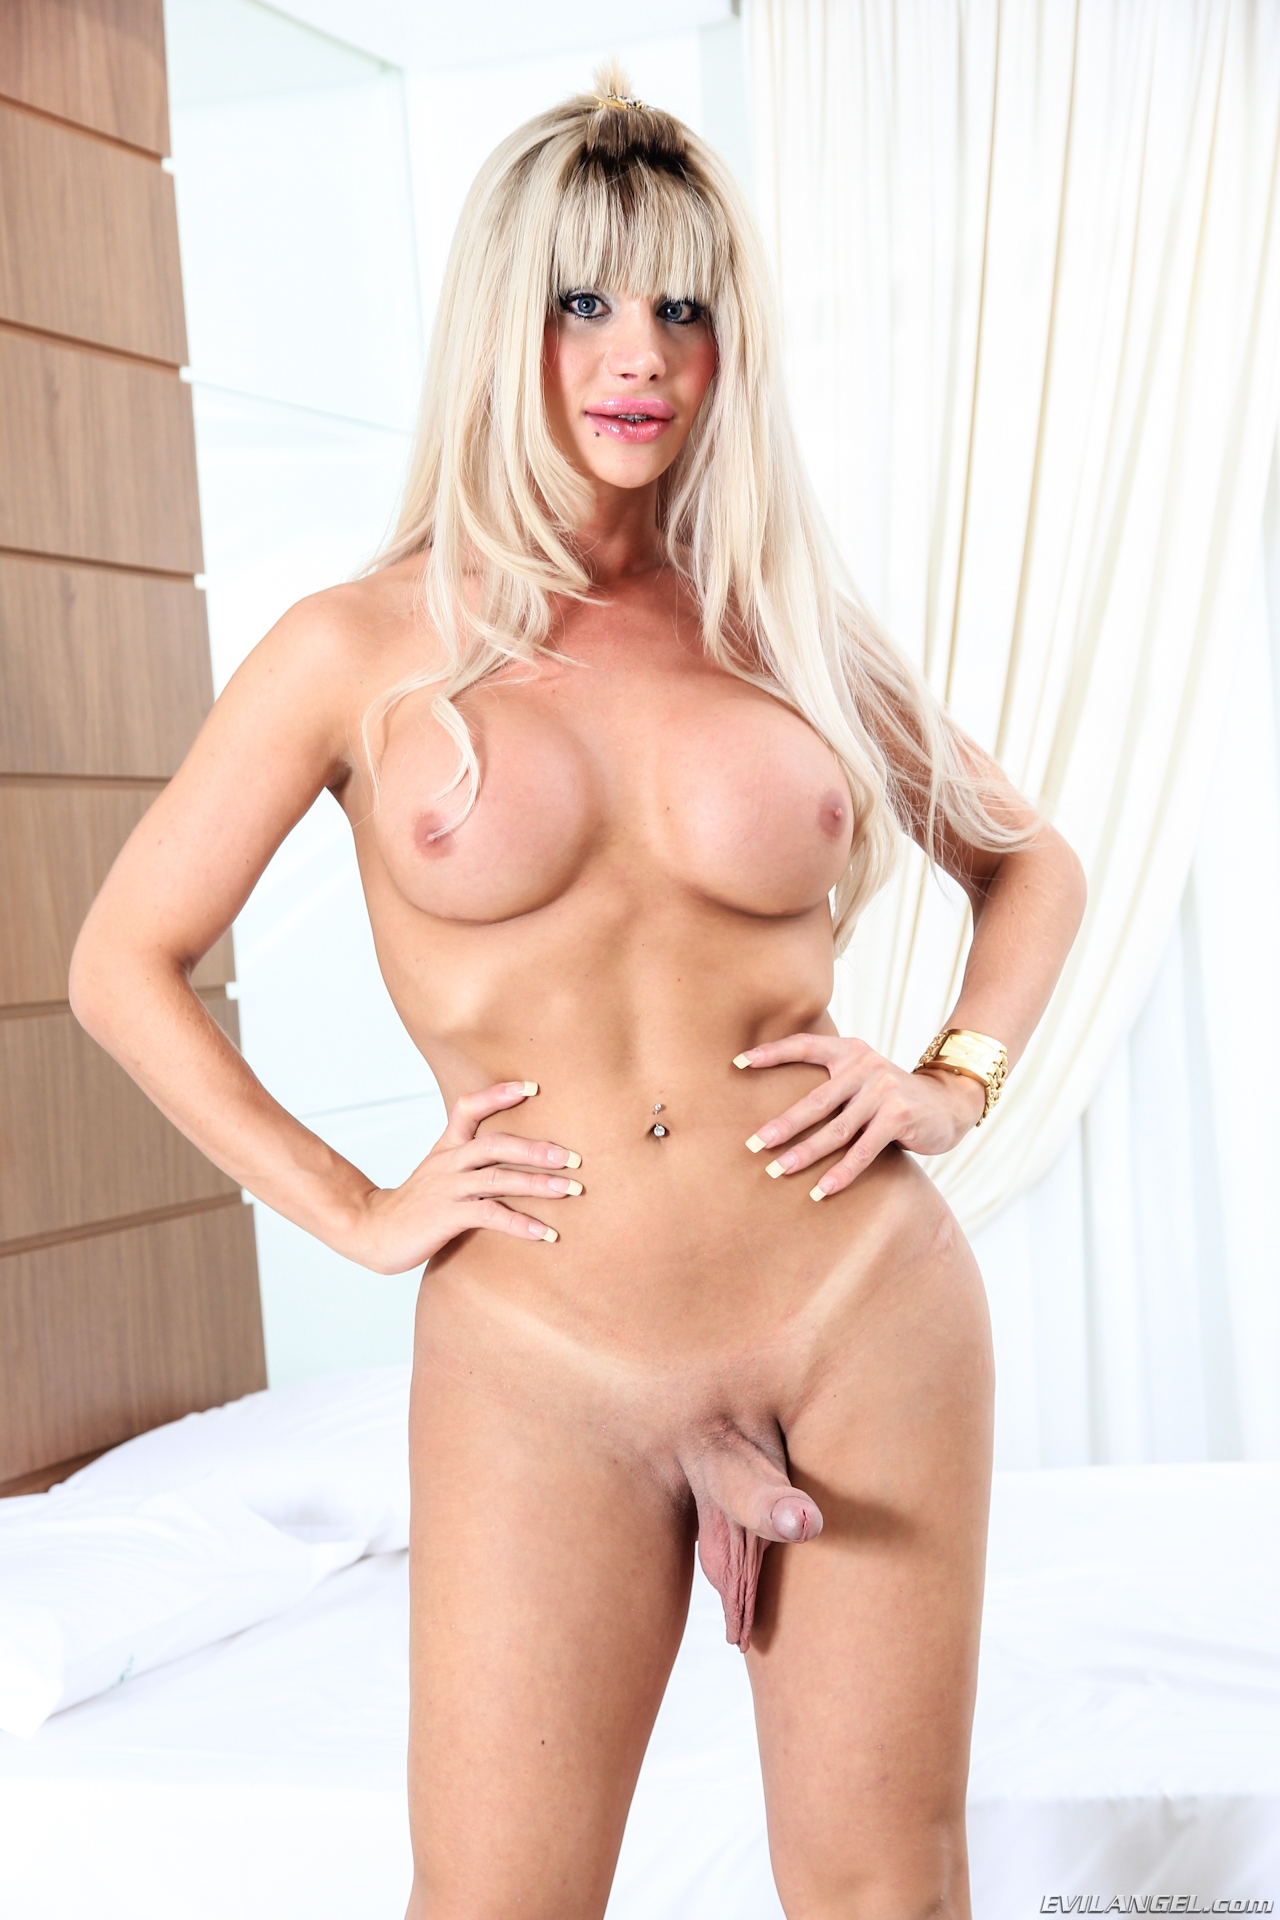 Fucks sexy milf dallas diamondz 6